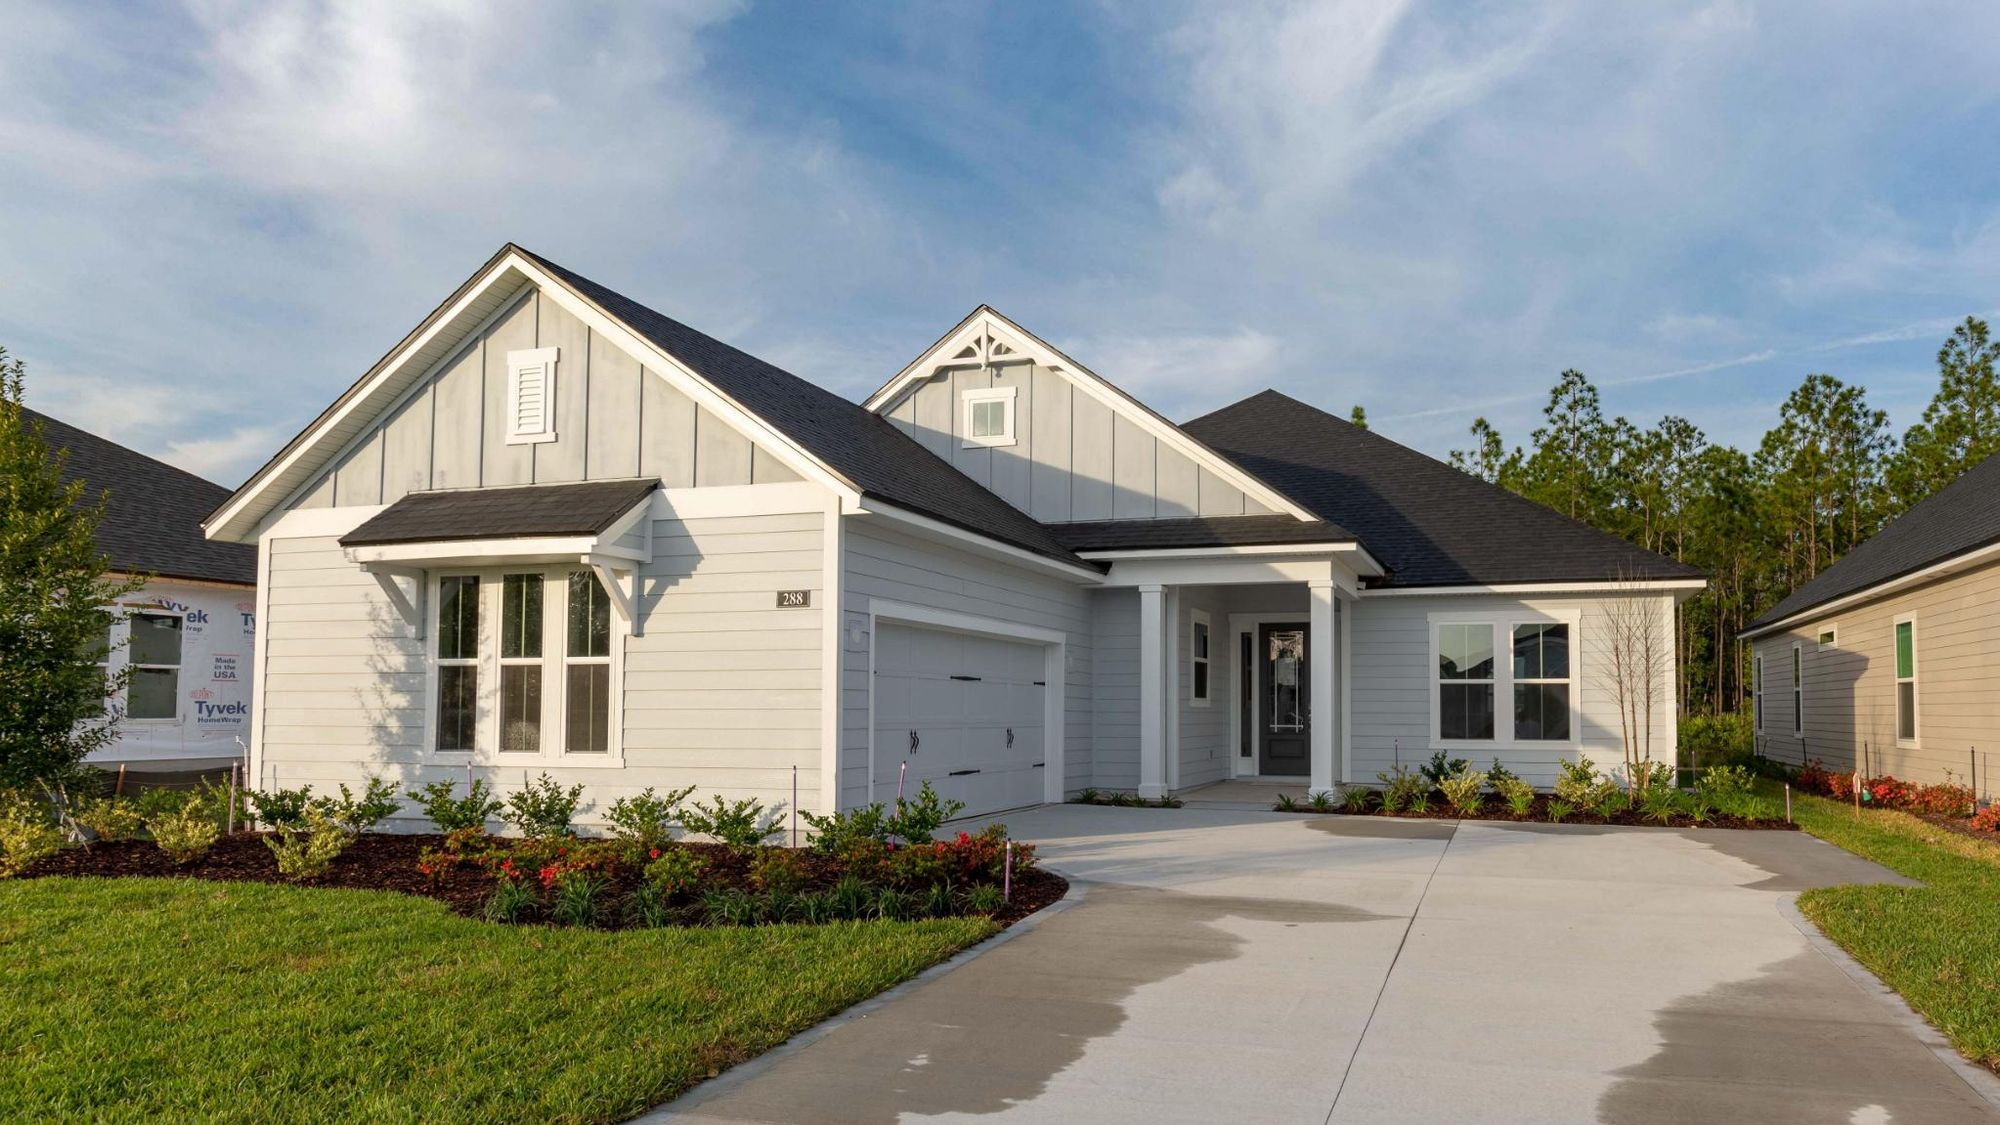 The Buckhorn Florida Farmhouse Elevation at Lot 214 in Heritage Trace